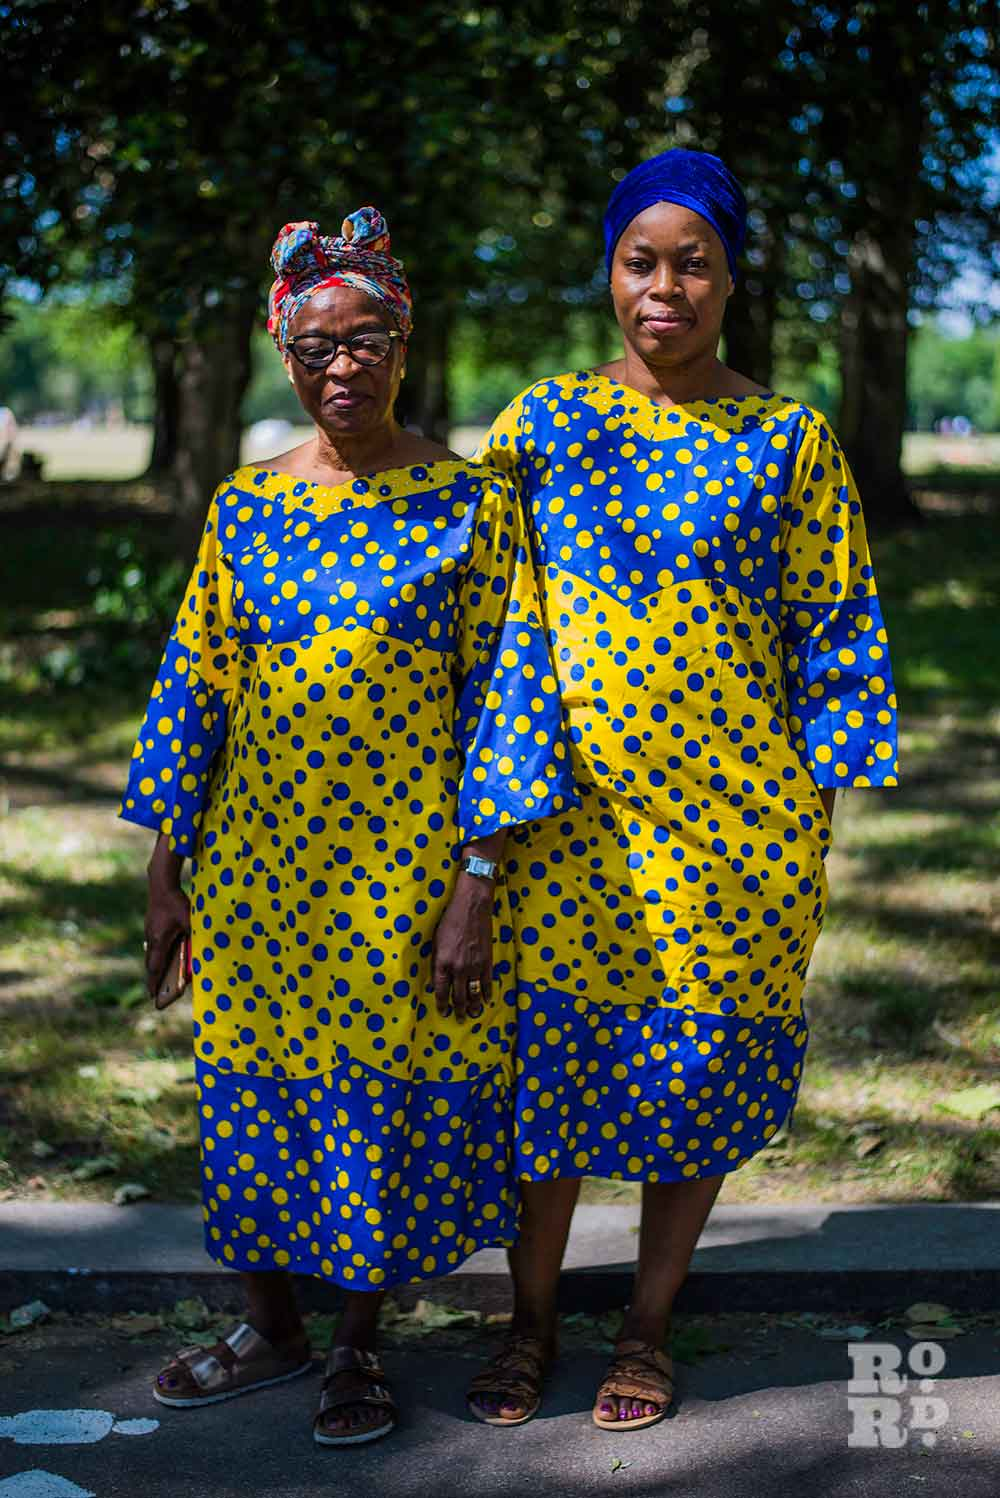 Ole and her mum Kim in Victoria Park wearing matching dresses environmental portraits by Matt Payne